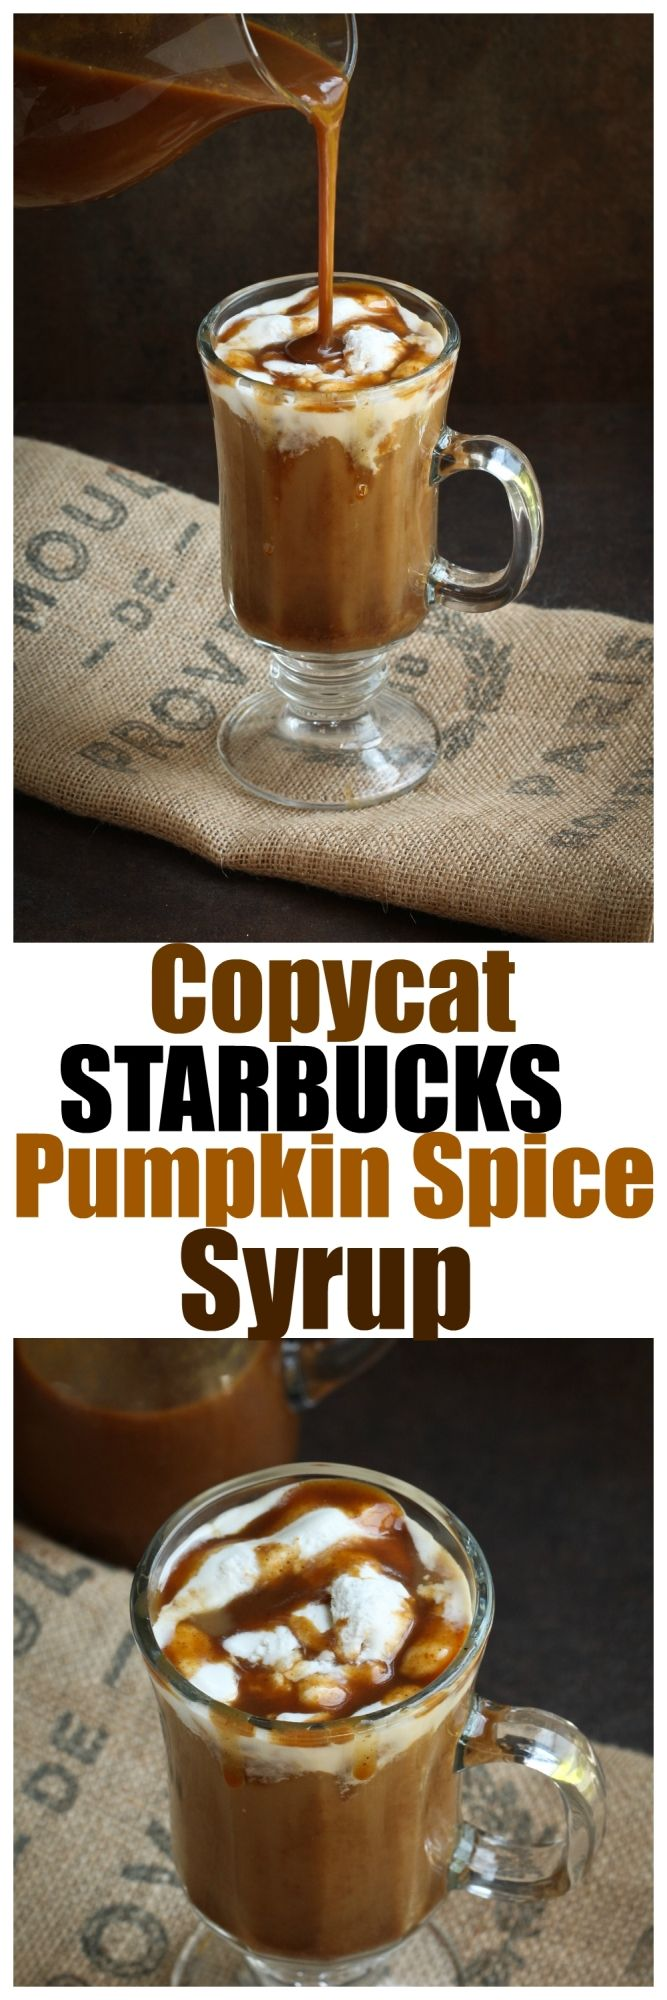 Copycat Starbucks Pumpkin Spice Sauce. Homemade dairy-free healthy Pumpkin Spice Sauce for lattes, smoothies & dessert. Easy to make. With real pumpkin.